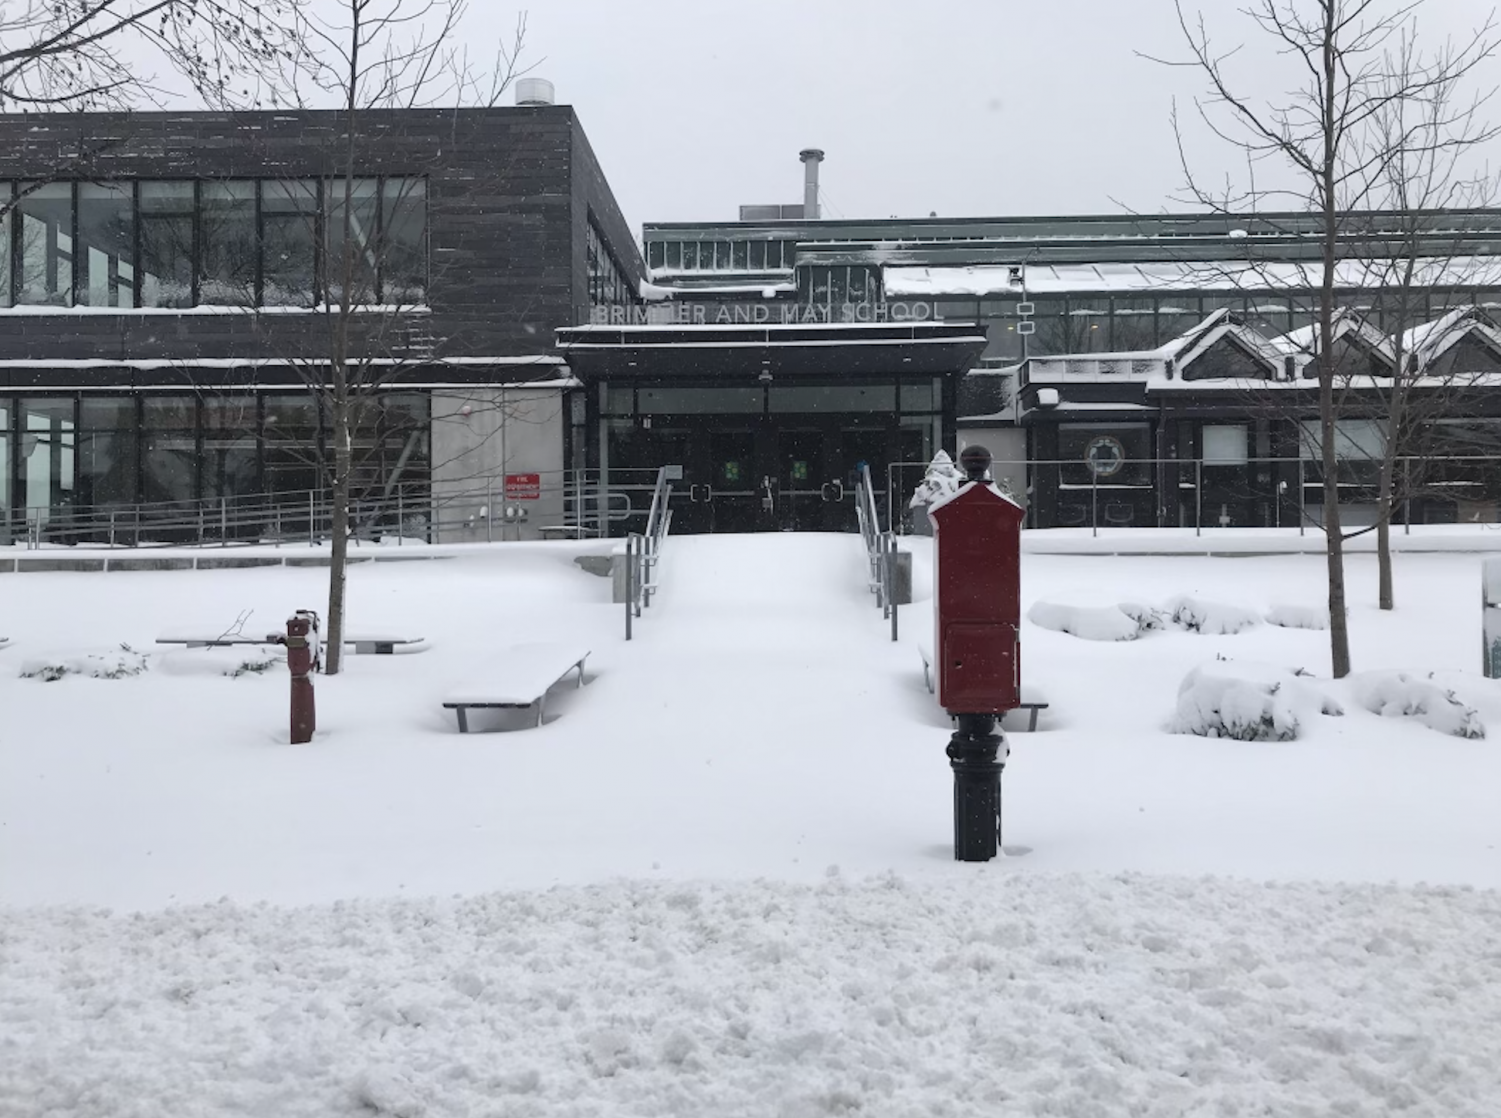 2020+Blizzard+Closes+Campus+During+Exam+Week